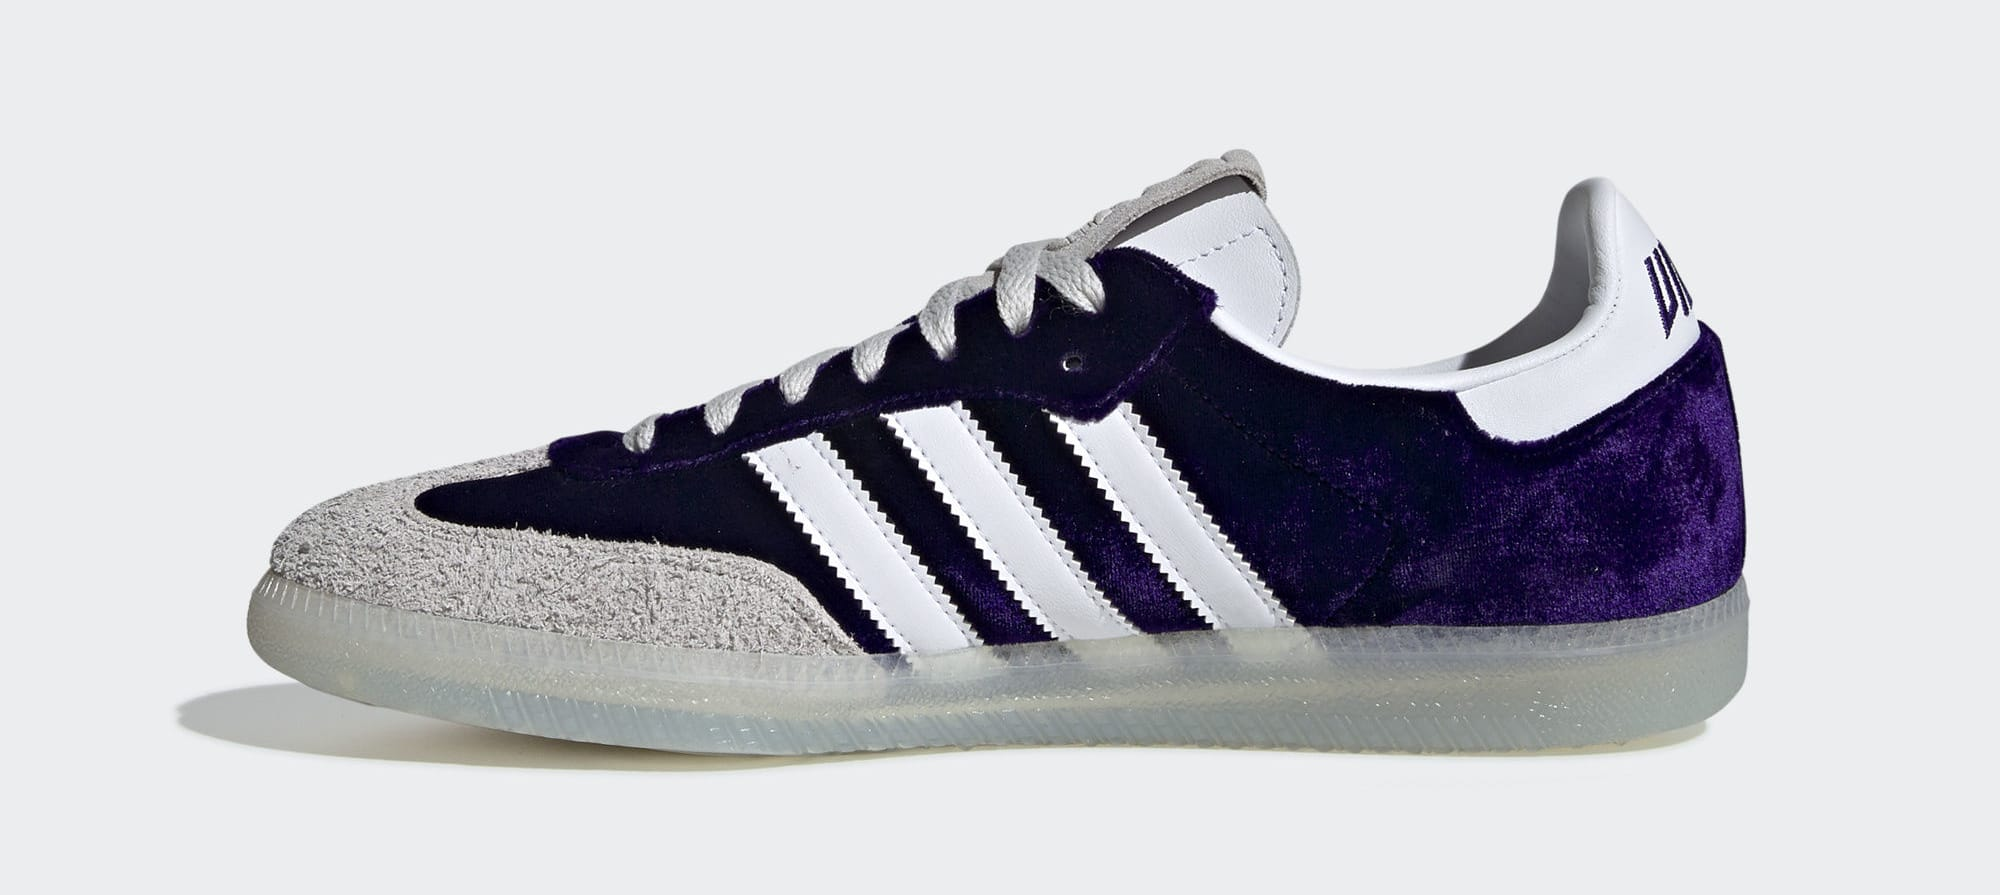 Adidas Samba 'Purple Haze' DB3011 (Medial)